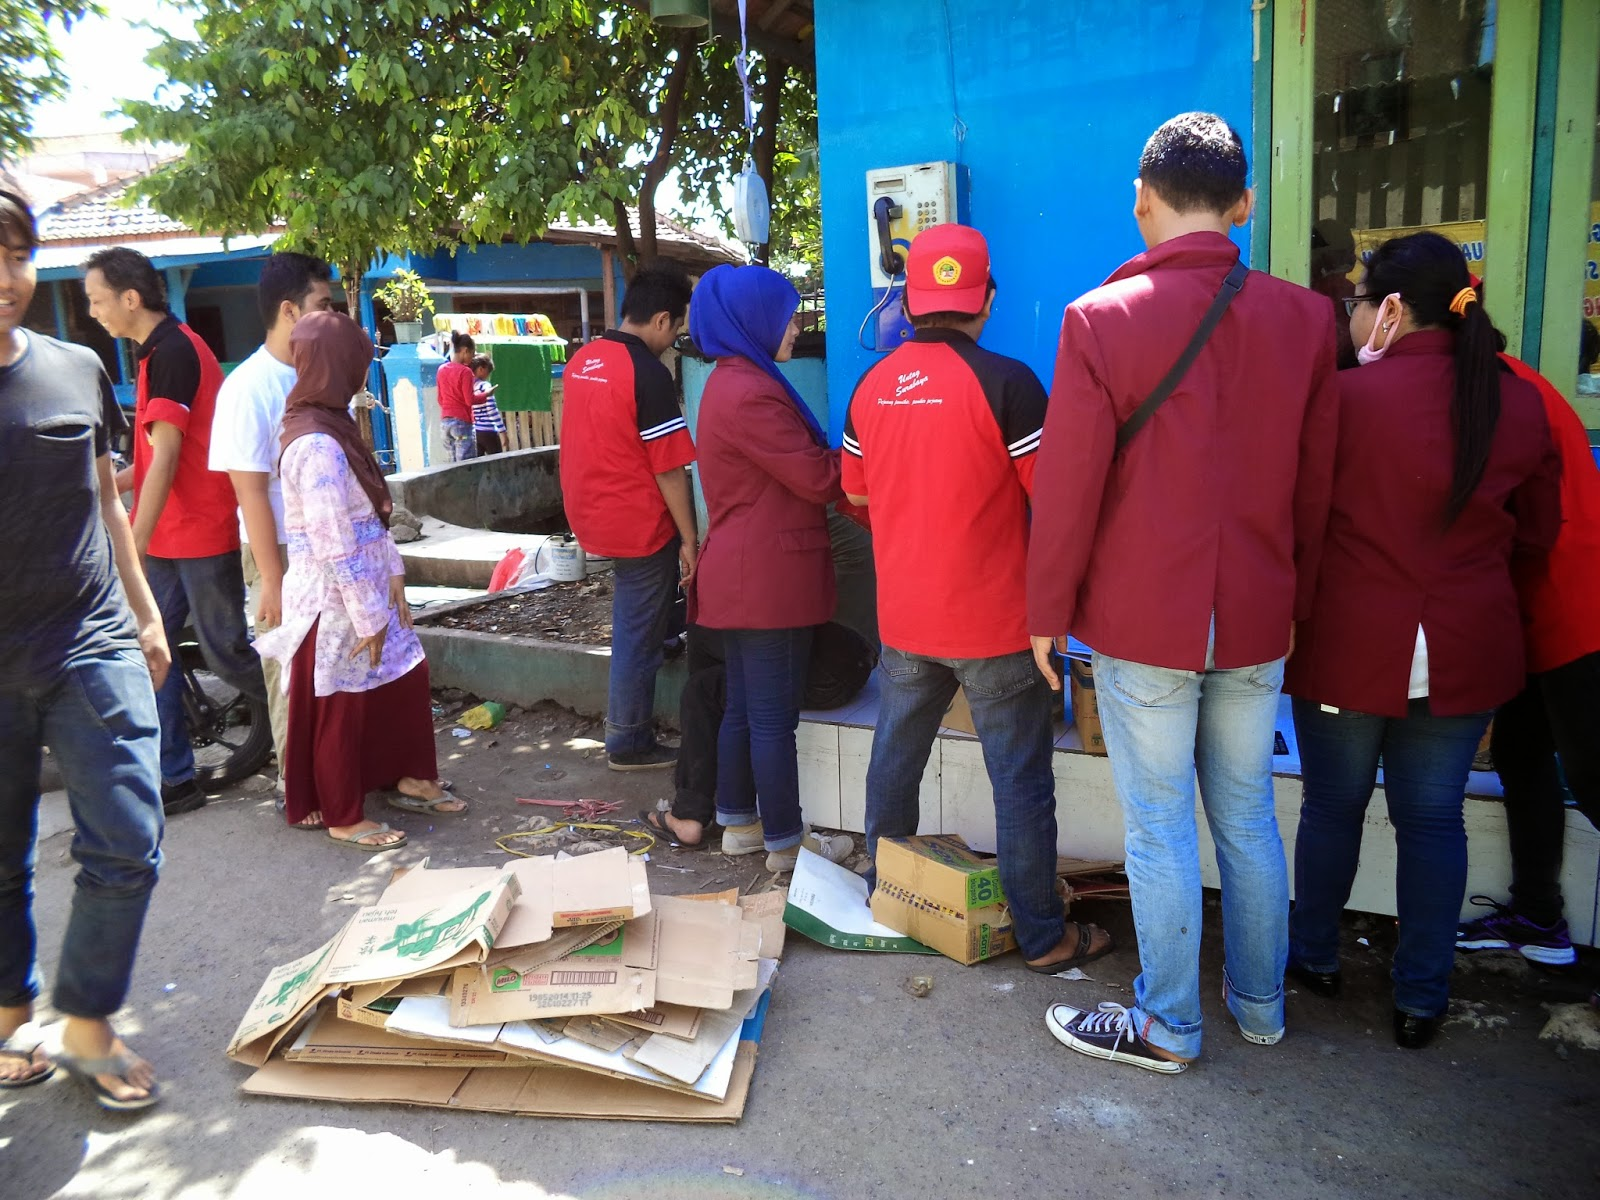 Banner Bank Sampah Kelompok Bank Sampah Memasang